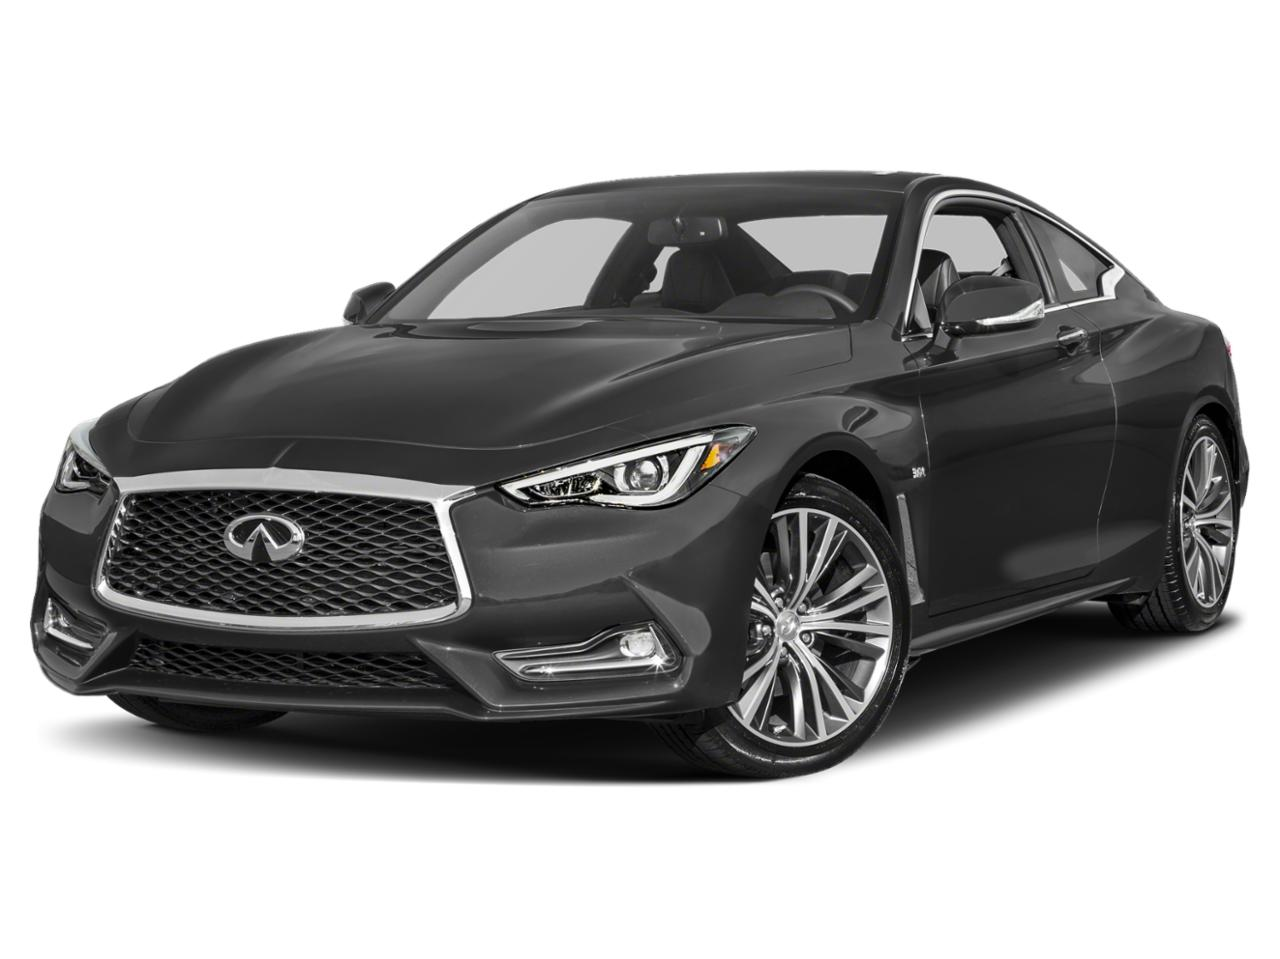 infiniti downtown - new and used cars, parts and service - toronto, on.